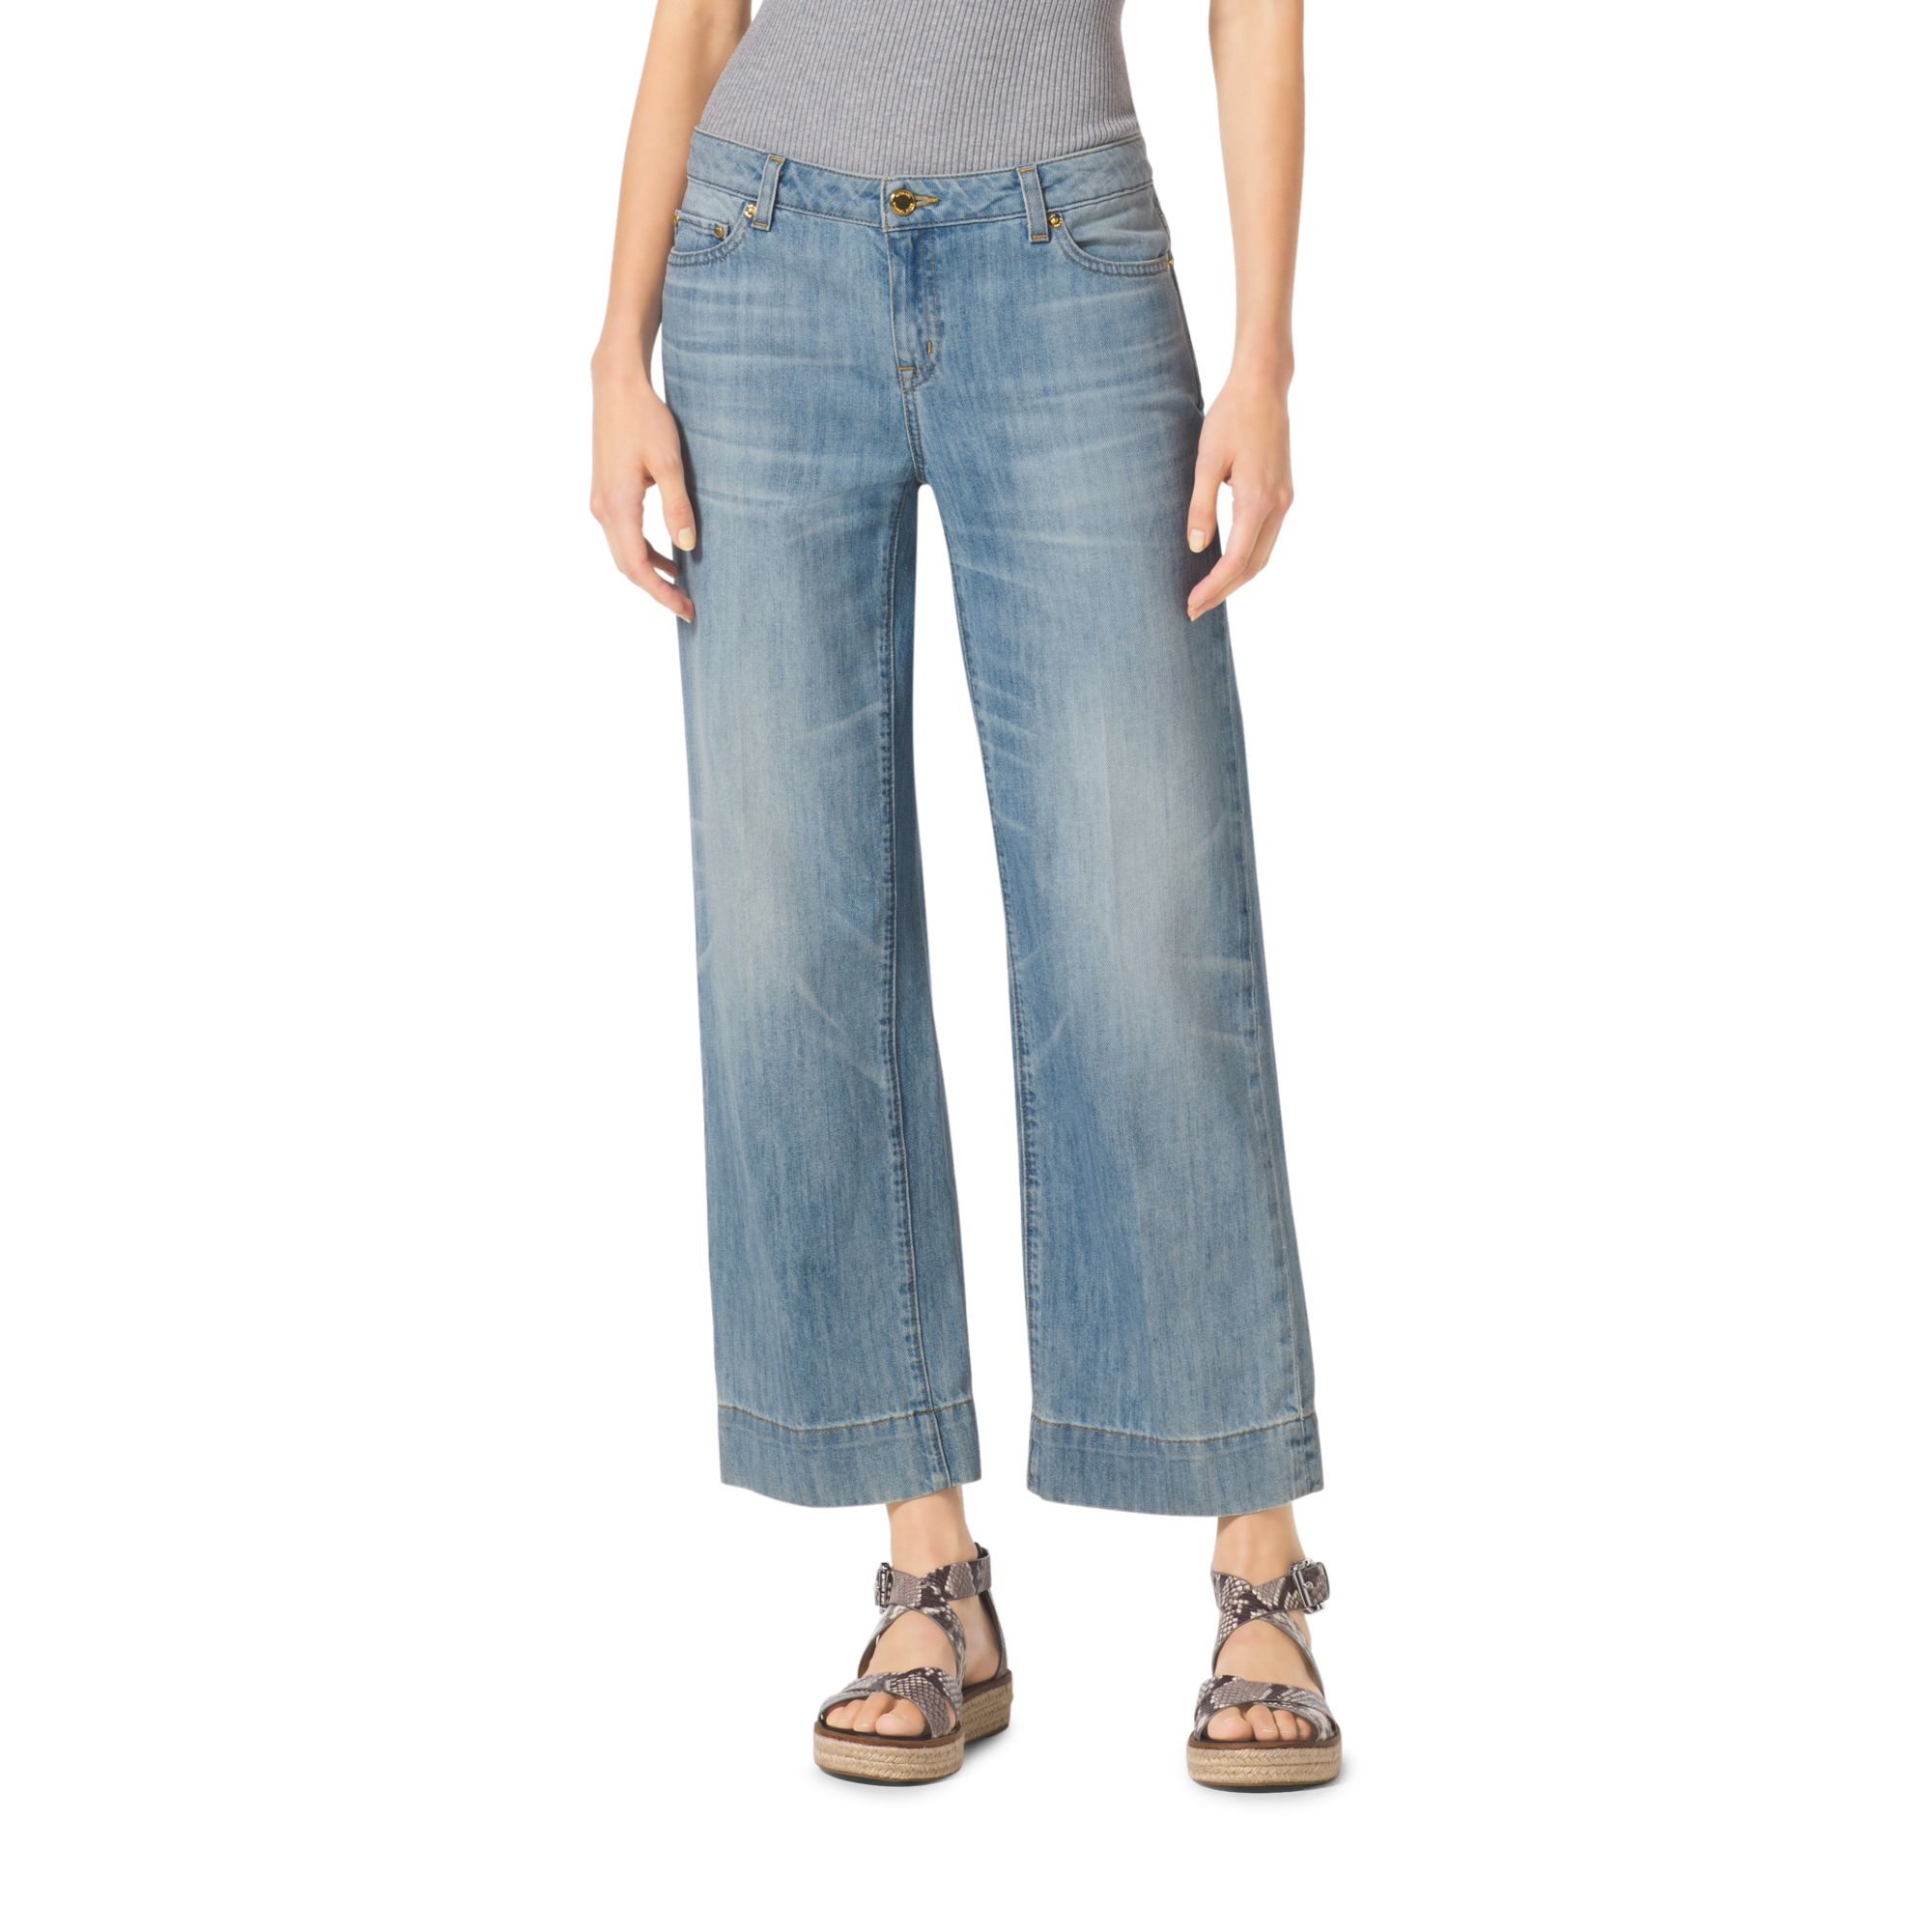 Michael kors Cropped Wide-leg Jeans in Blue | Lyst